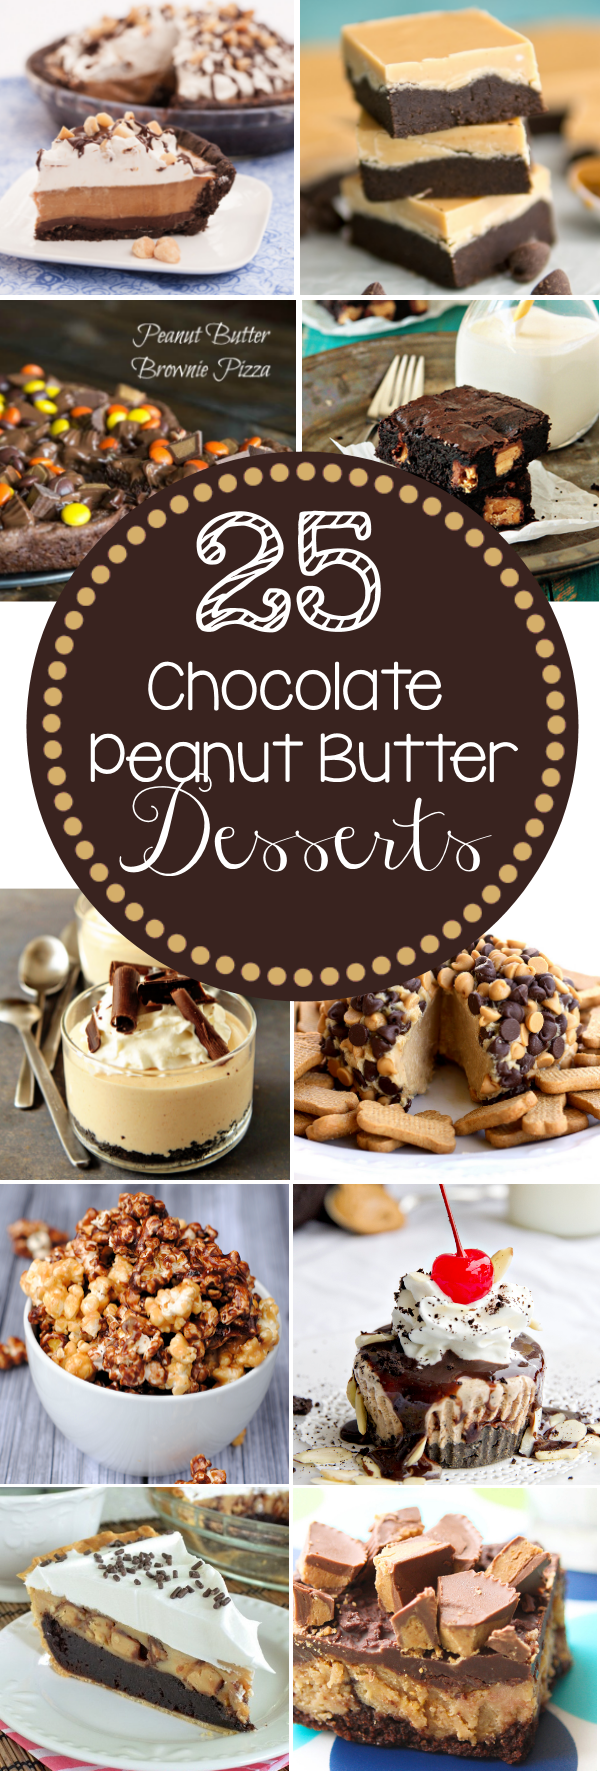 25 Chocolate Peanut Butter Desserts